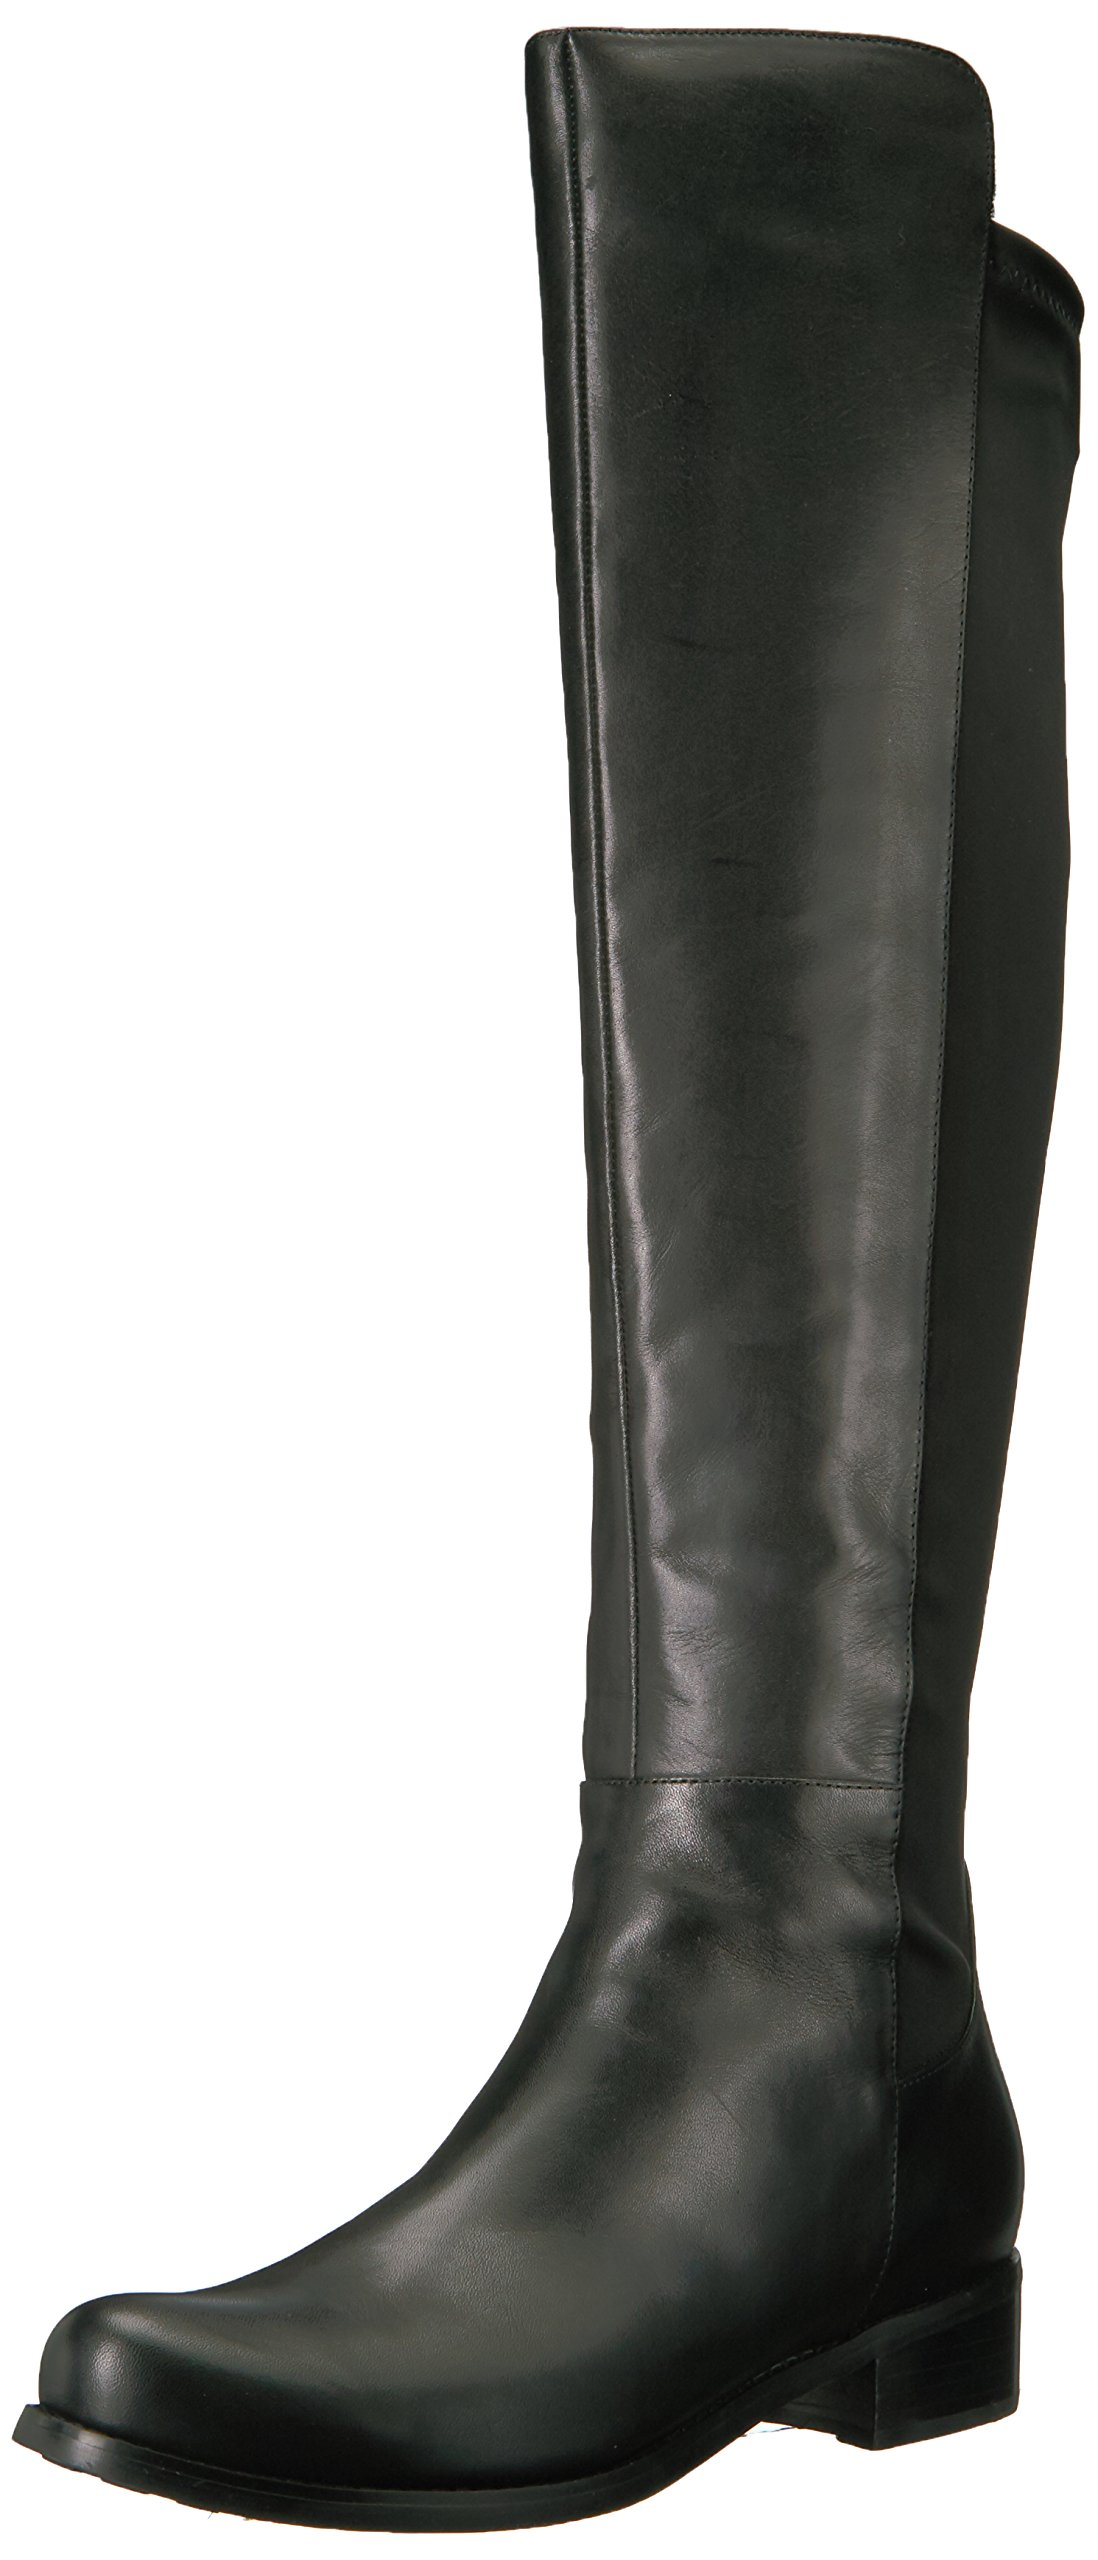 Blondo Women's Velma Waterproof Riding Boot, Black, 8 M US